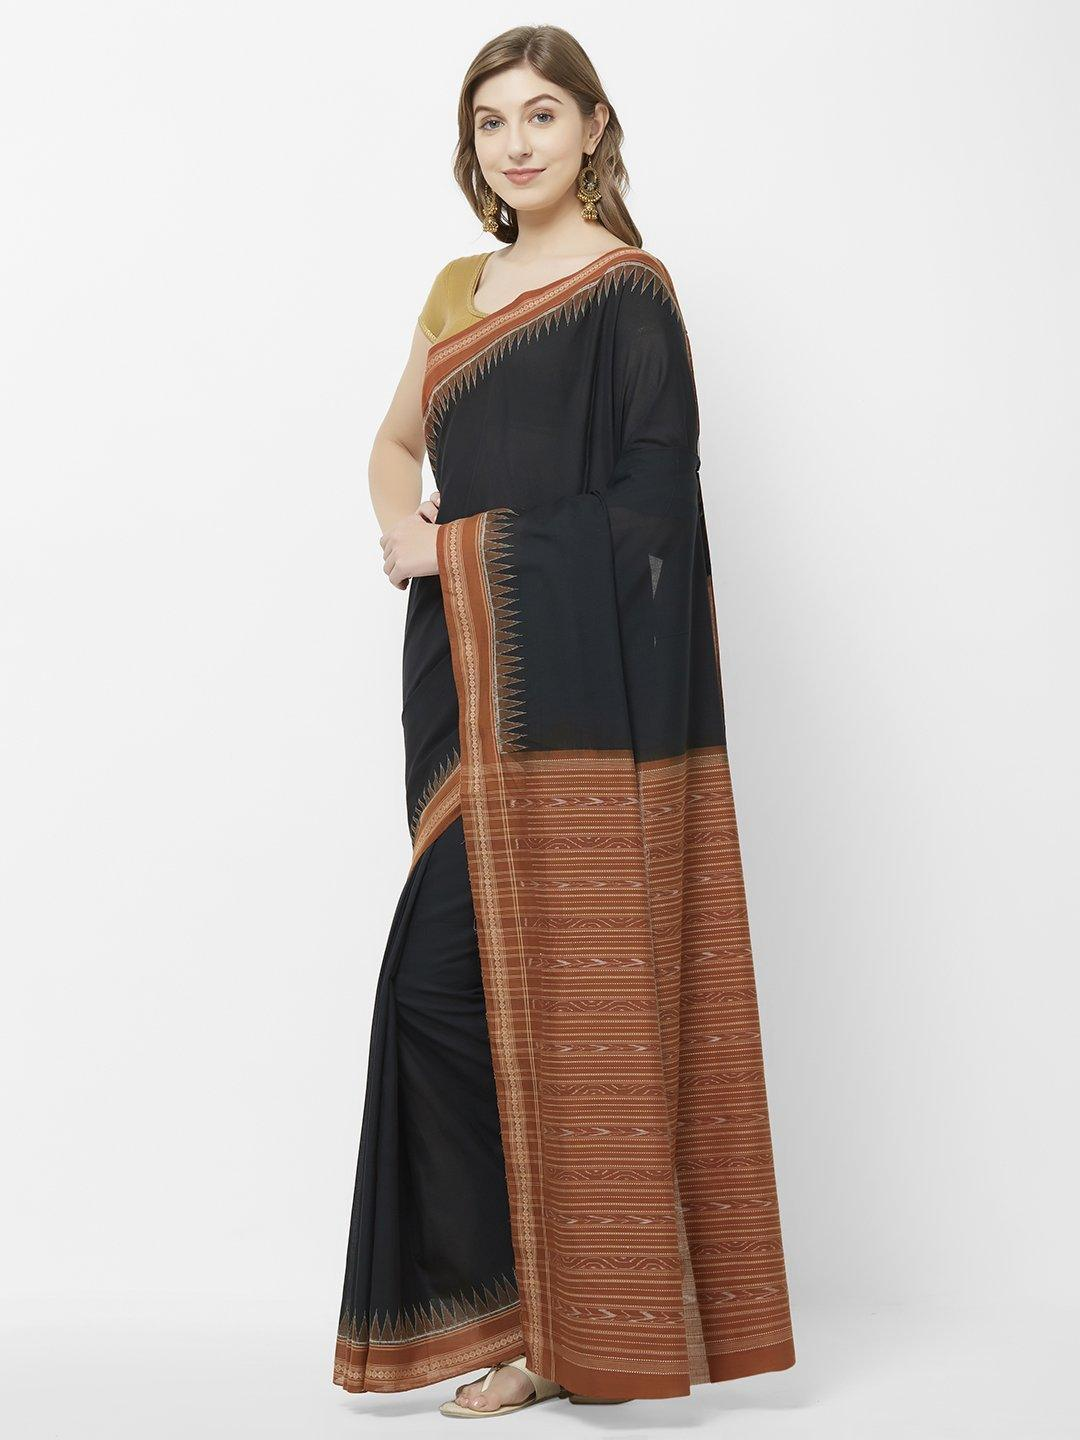 CraftsCollection.in - Black and Rust Odisha Sambalpuri Cotton Saree